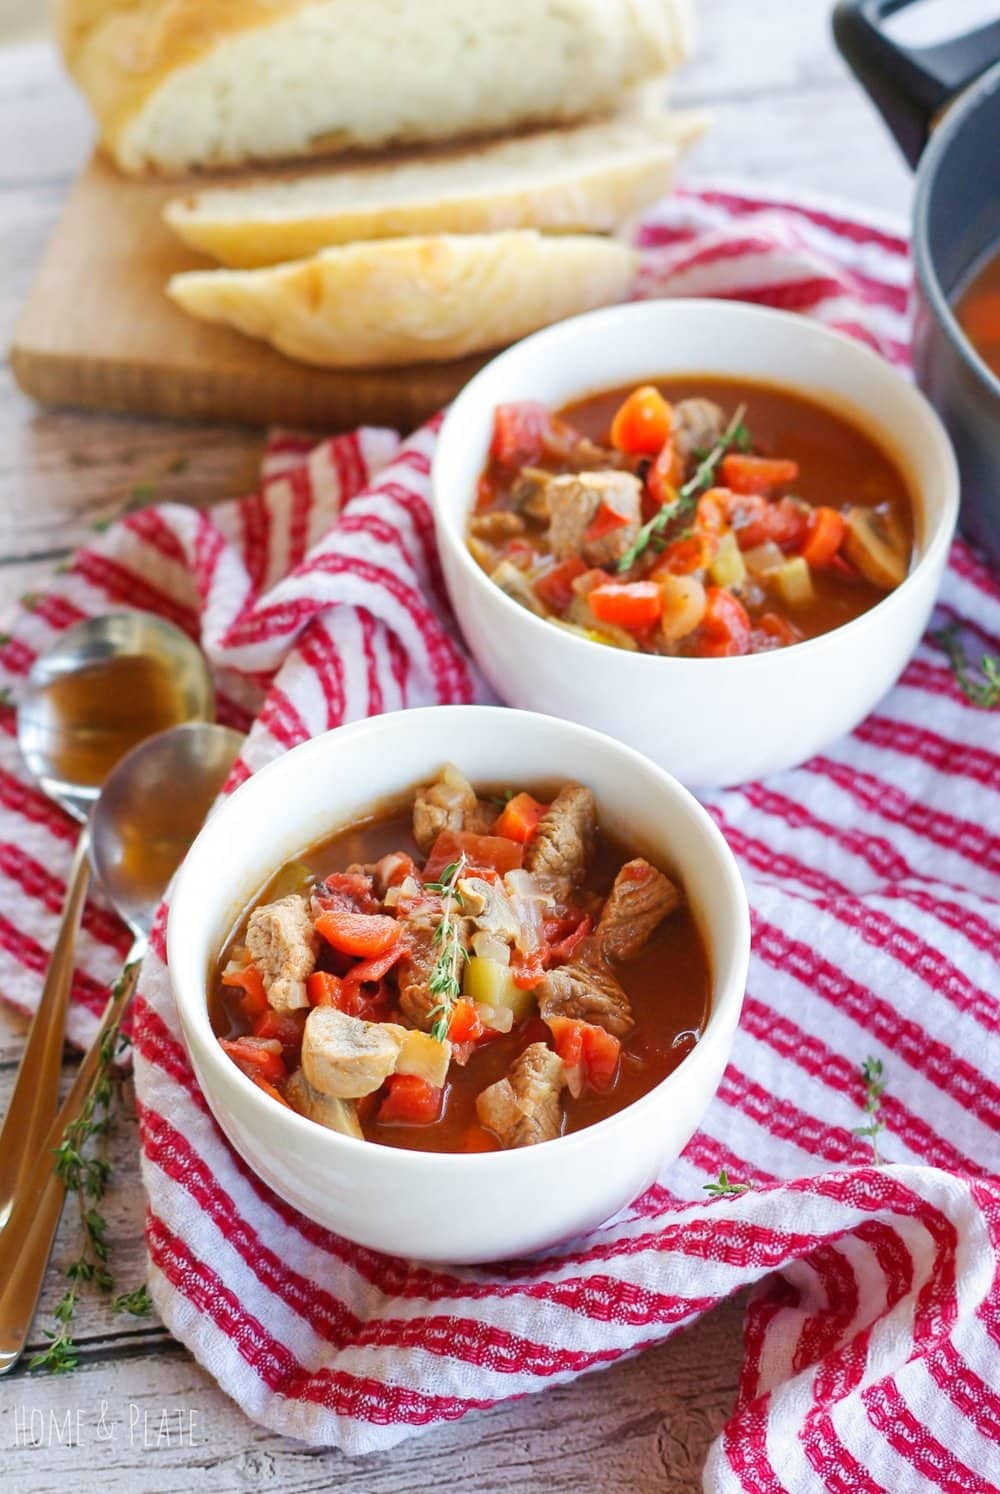 Hearty Winter Beef Stew   www.homeandplate.com   This healthy winter stew if chock full of tender beef and vegetables and can be made on the stovetop or crockpot.